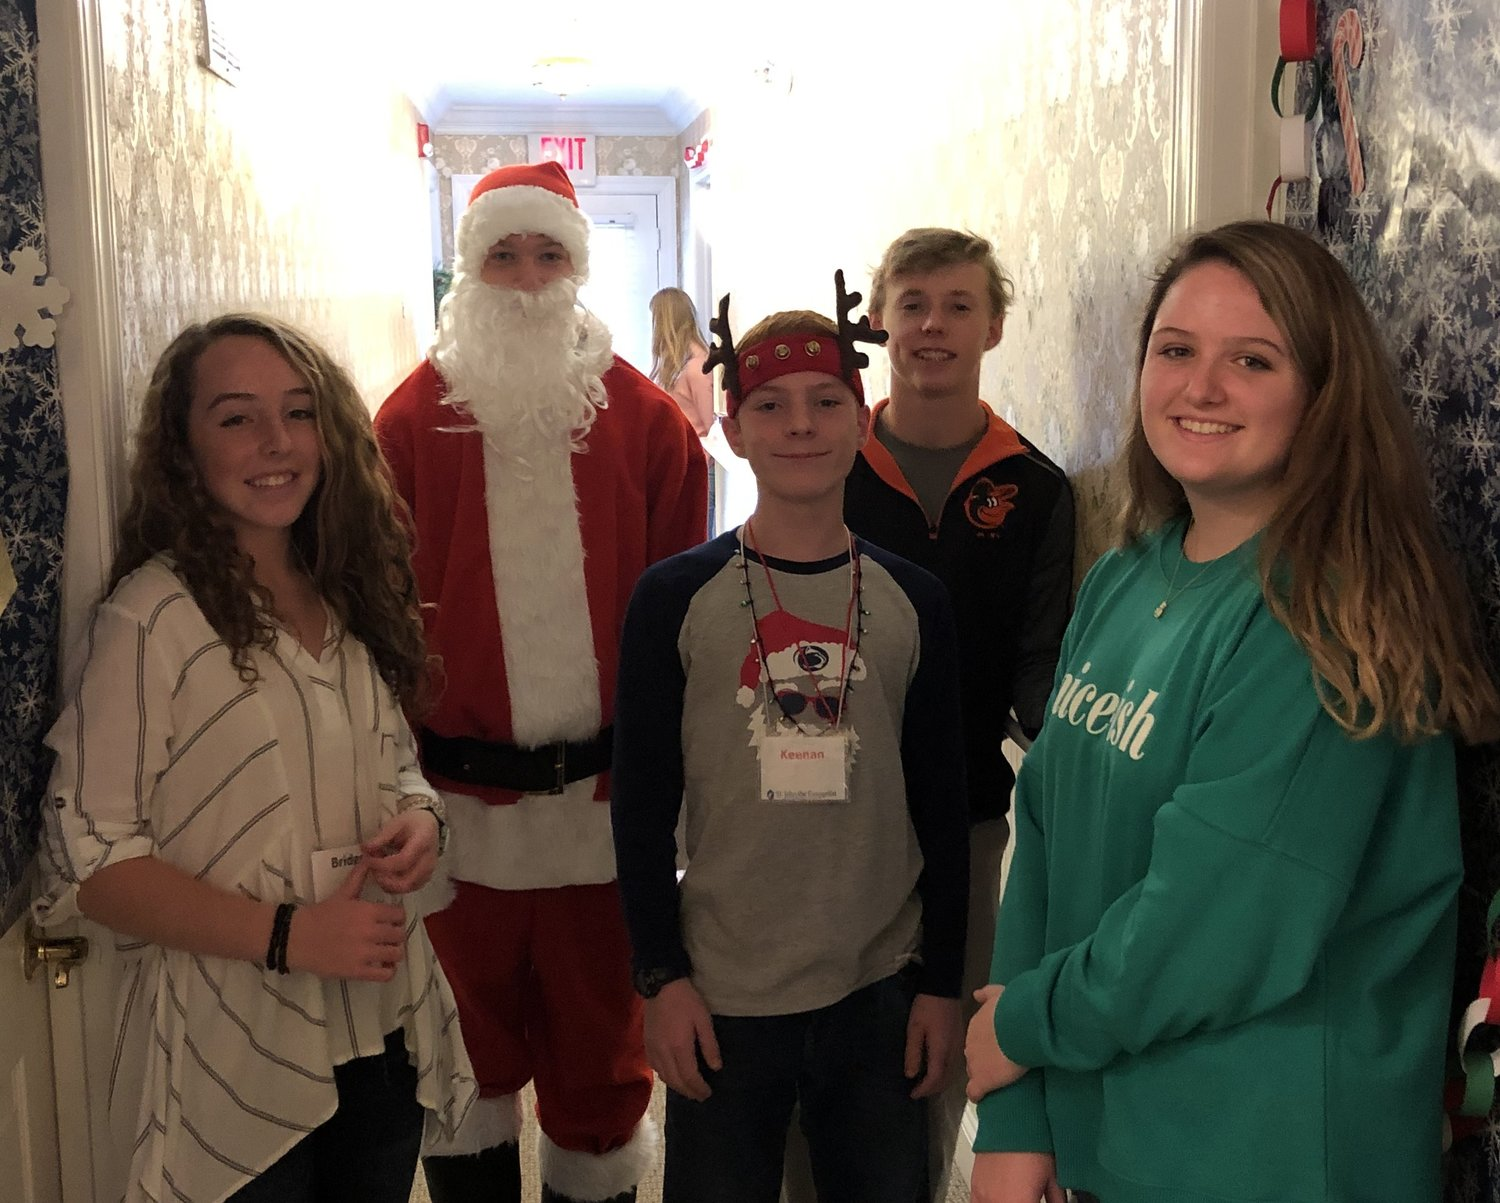 (L-R) Bridget Donovan, Eddie Sullivan, Keenan Kopf, Kyle Garrett and Sydney Bear were part of the St. John group that brought holiday cheer to the residents of PearTree House Assisted Living on December 9.